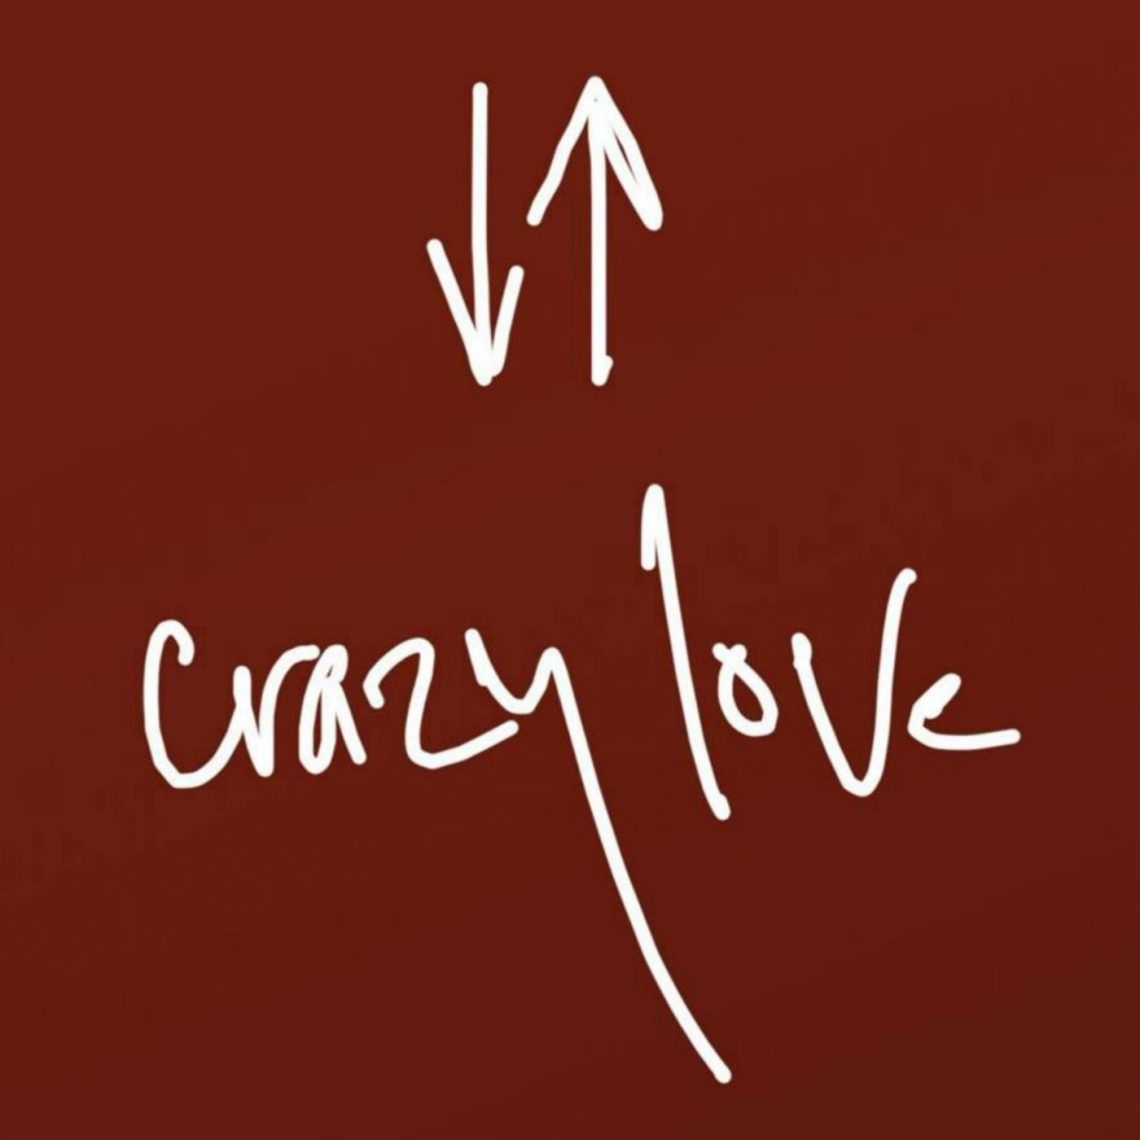 Crazy Love – Crazy Holy